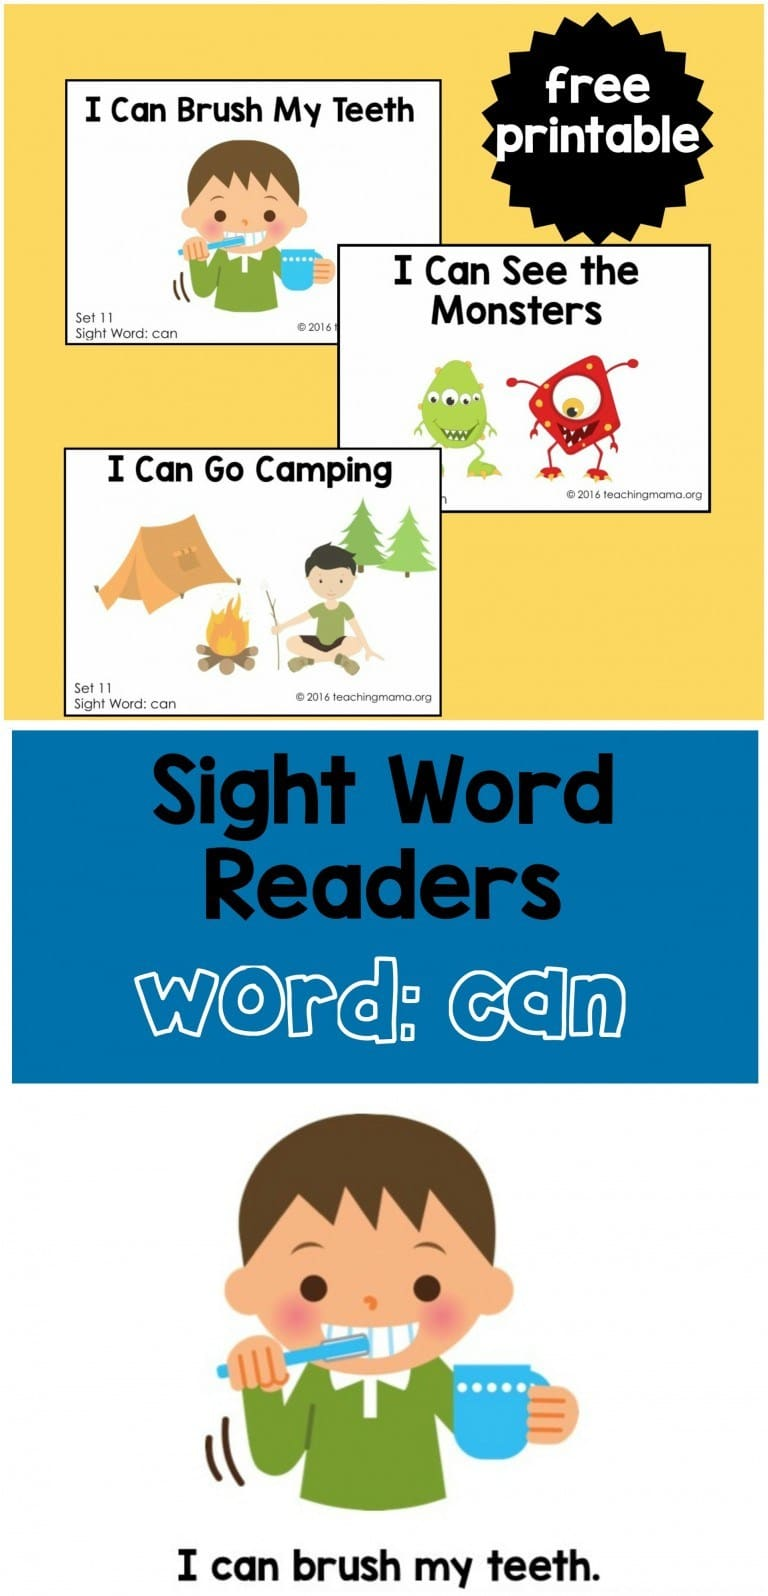 Sight-Word-Reader-Can-768x1596